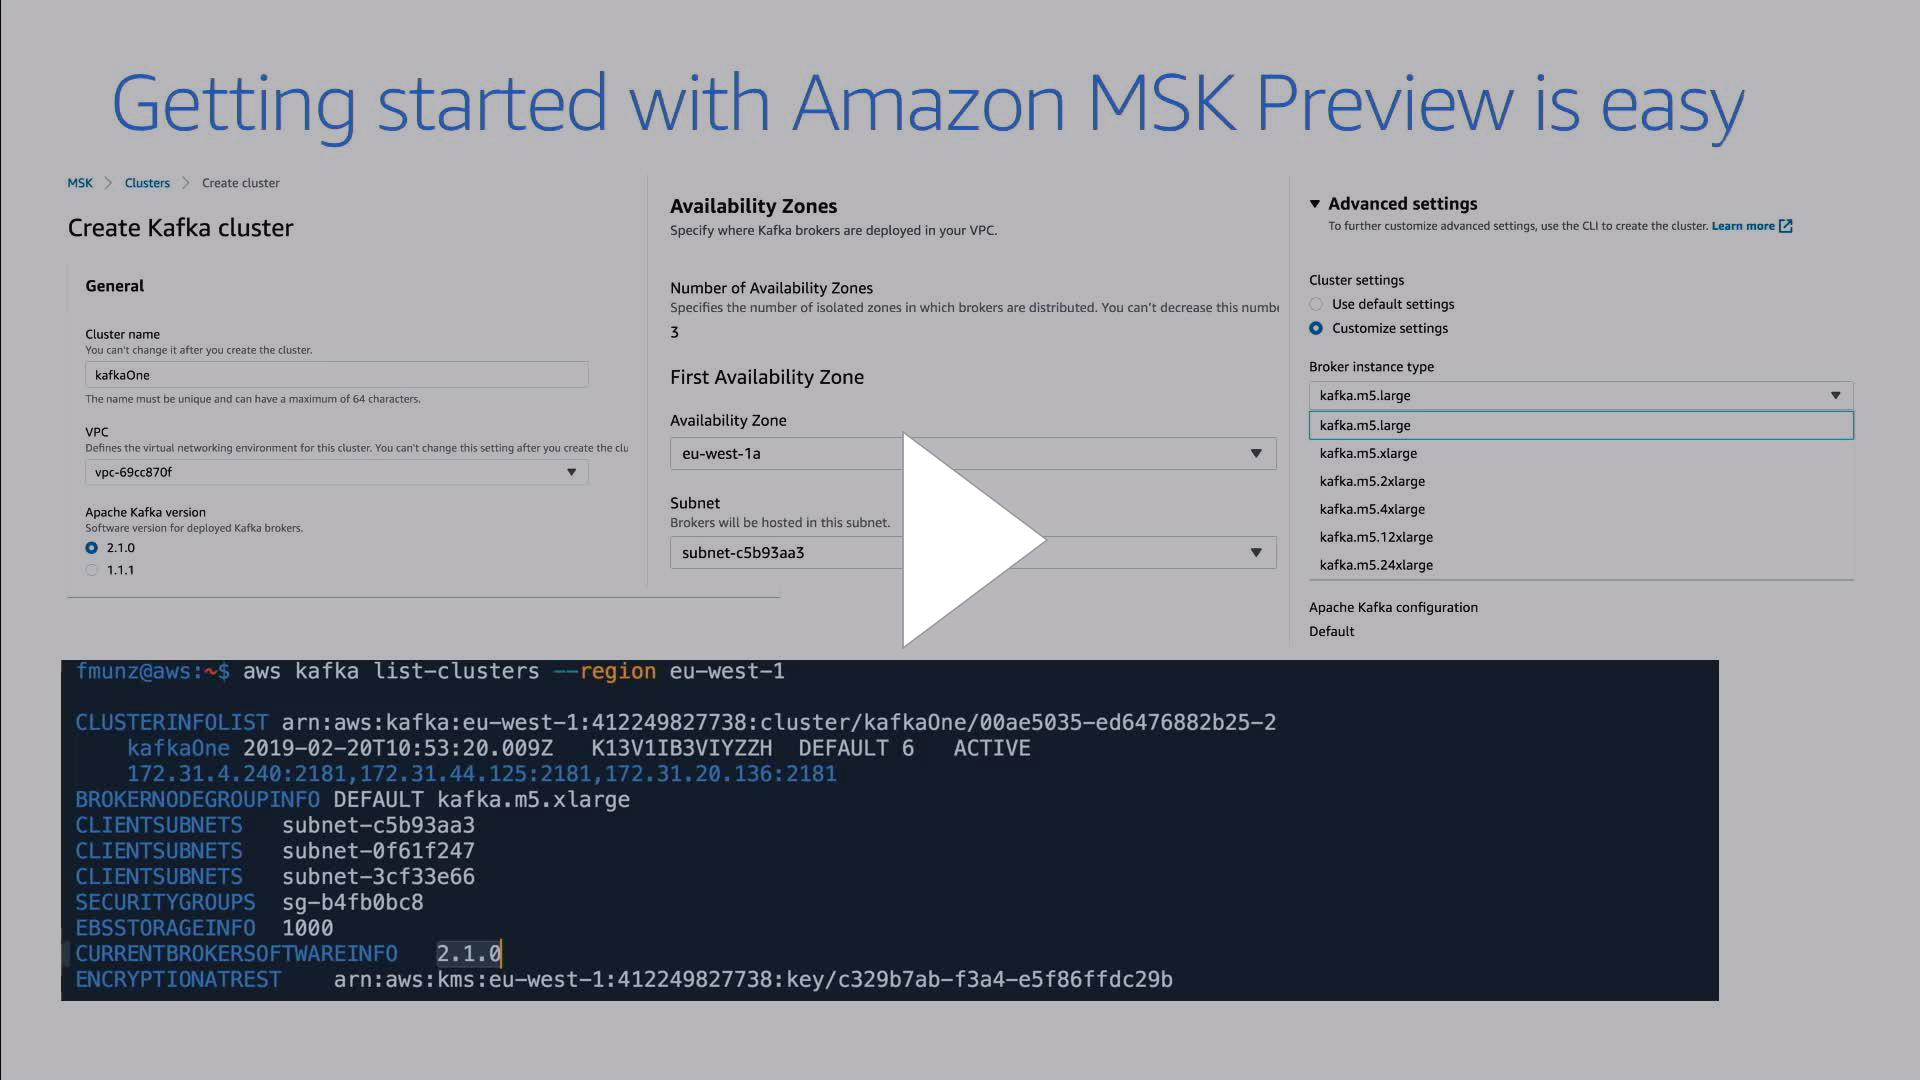 AWS - msk pricing - Twitch